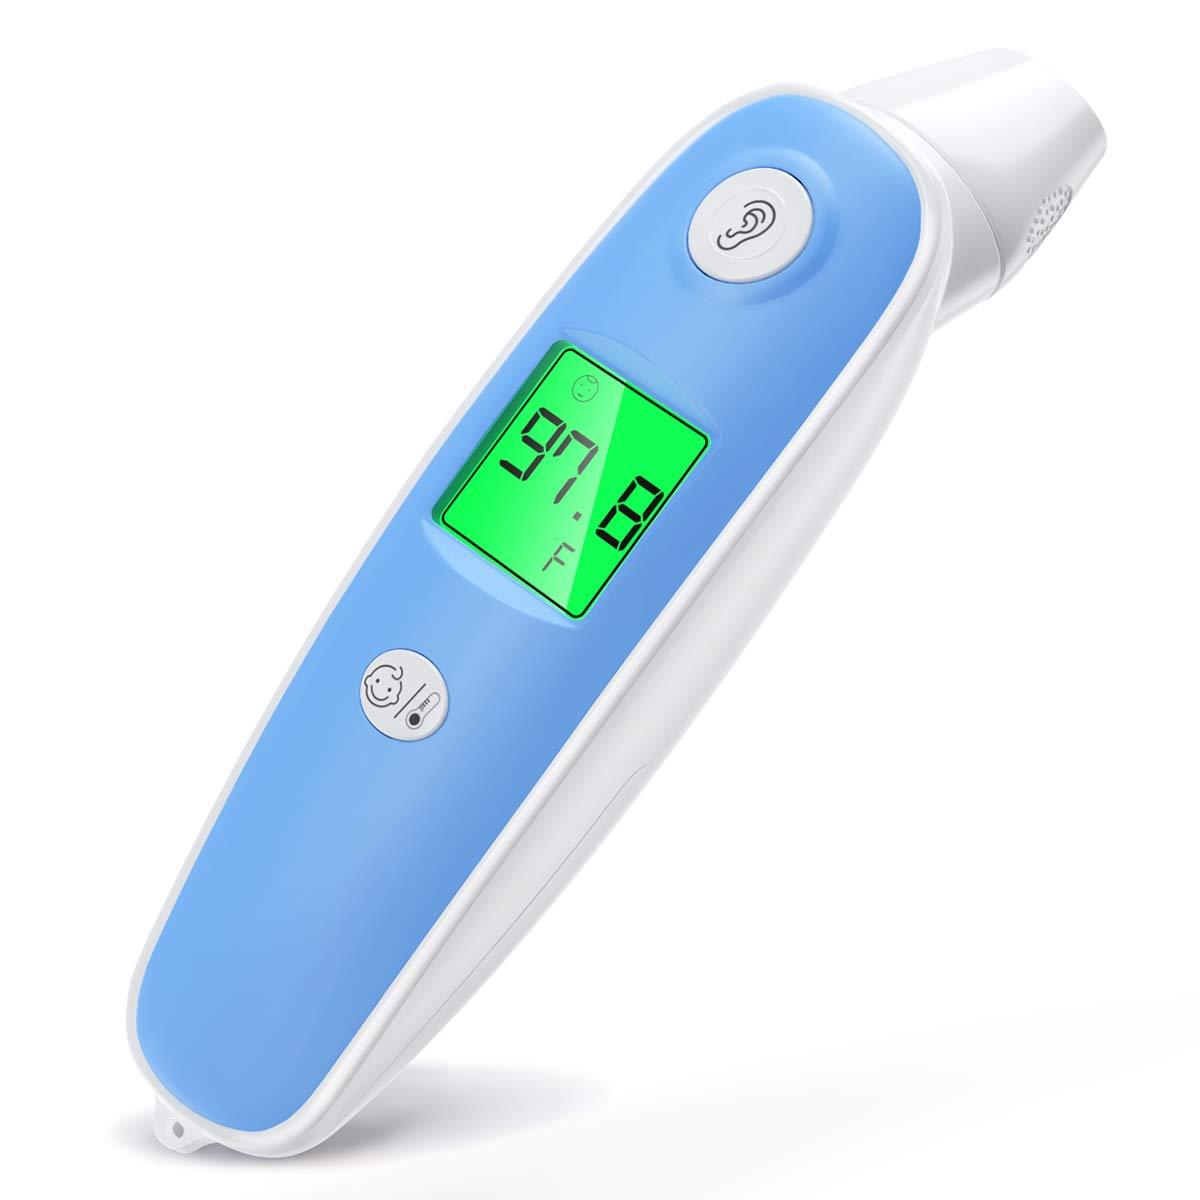 Baby Thermometer, Aimego Forehead and Ear Thermometer for Fever, Infrared Infant Thermometer for Kids, Accurate Baby Digital Medical Thermometer with Fever Alarm FDA Non Contact Adult and Baby 2019